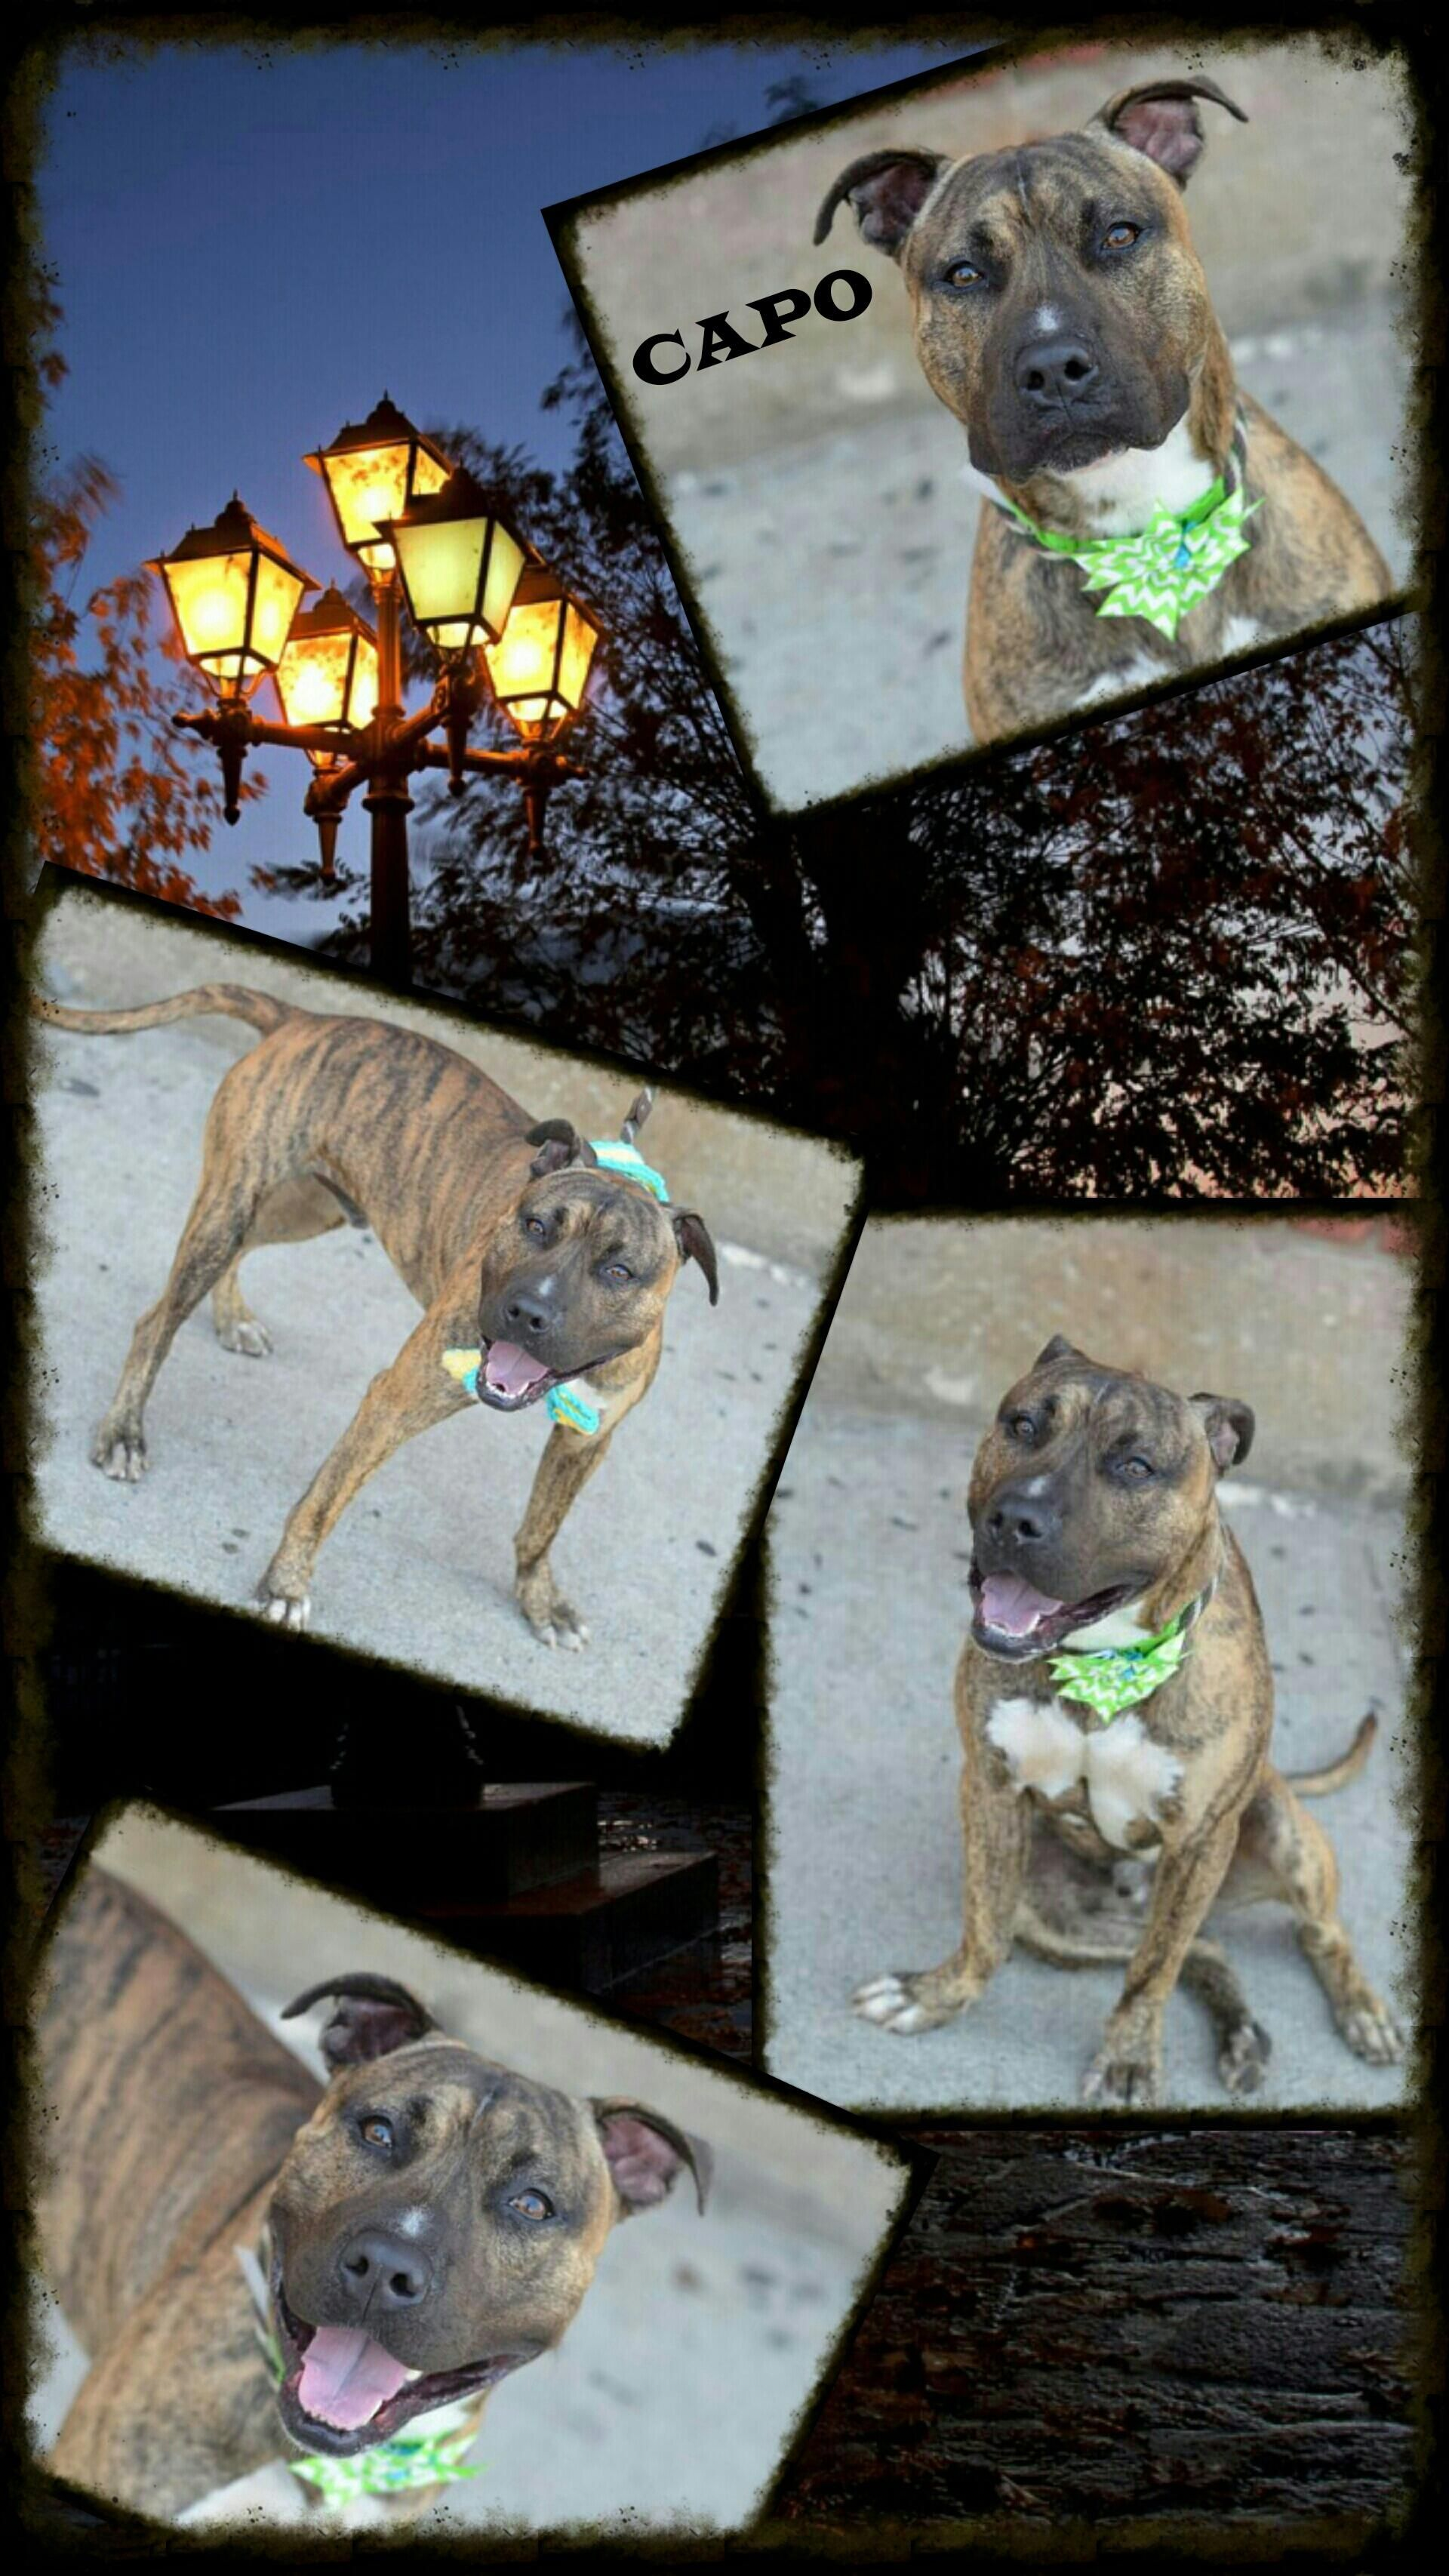 Capo A1049670 Help Us Save Nyc Ac C Shelter Dogs Pet Adoption Dogs Up For Adoption Shelter Dogs